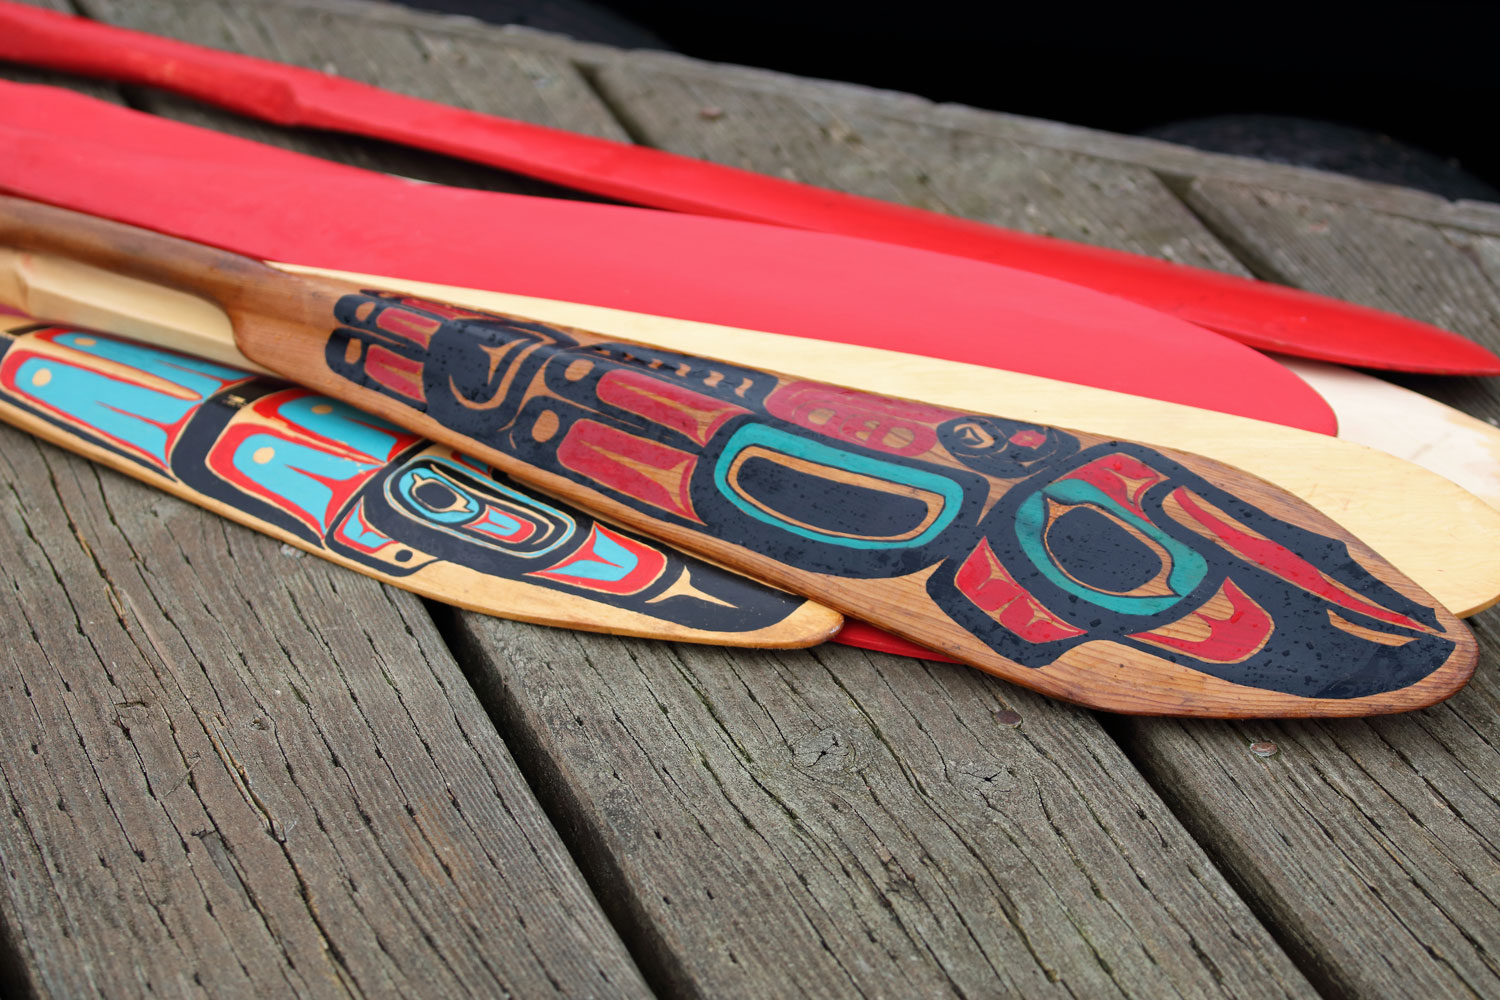 Hand painted canoe paddles on the dock at the harbor.